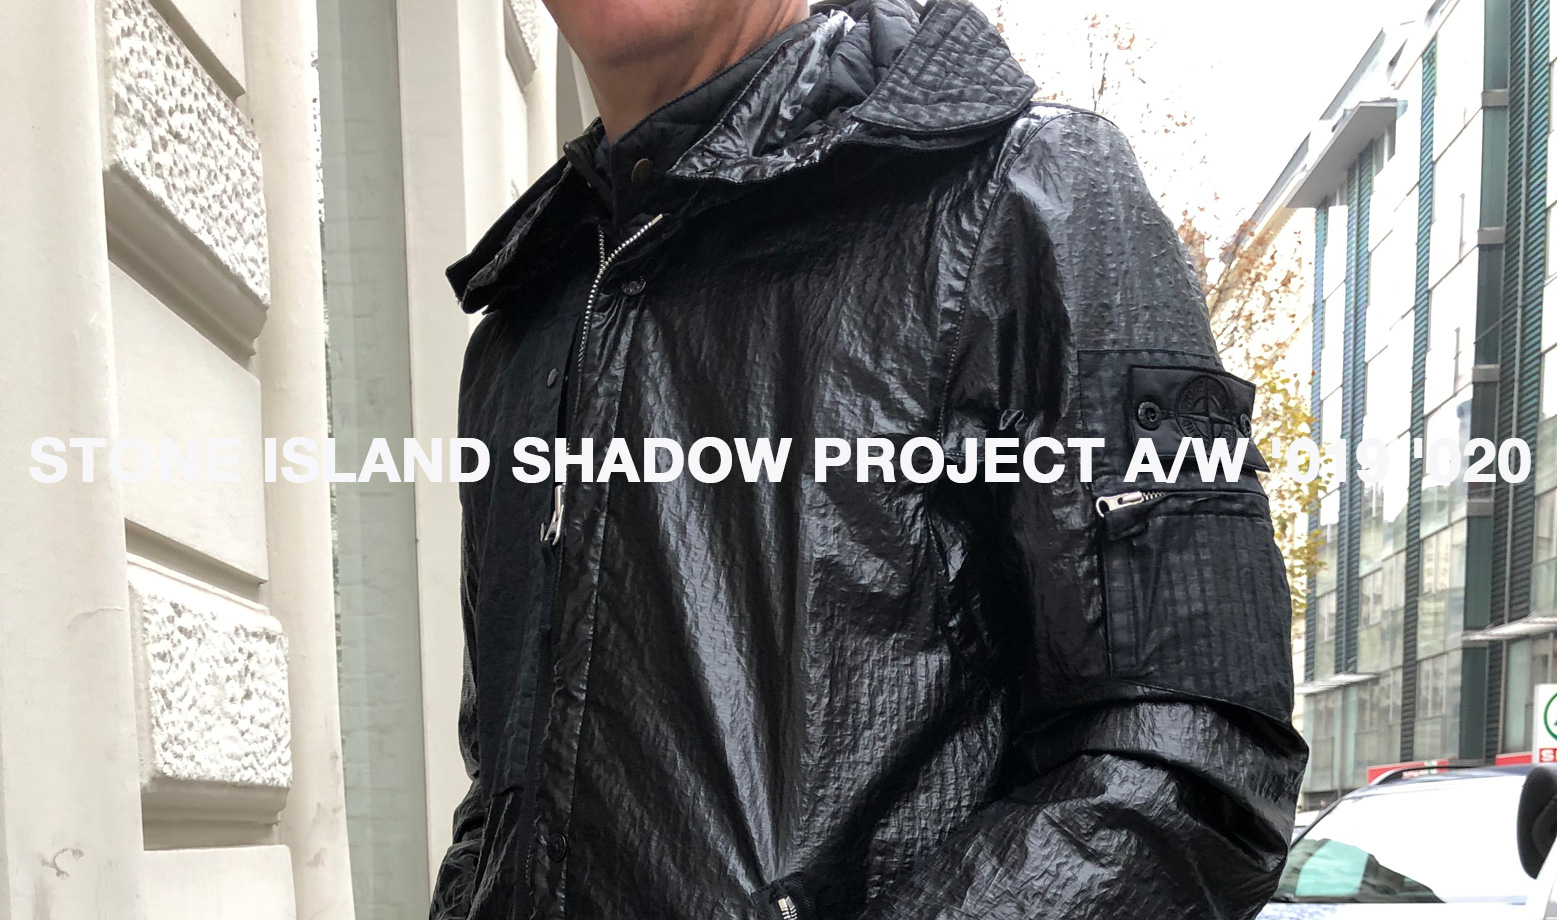 STONE ISLAND SHADOW PROJECT '019 '020